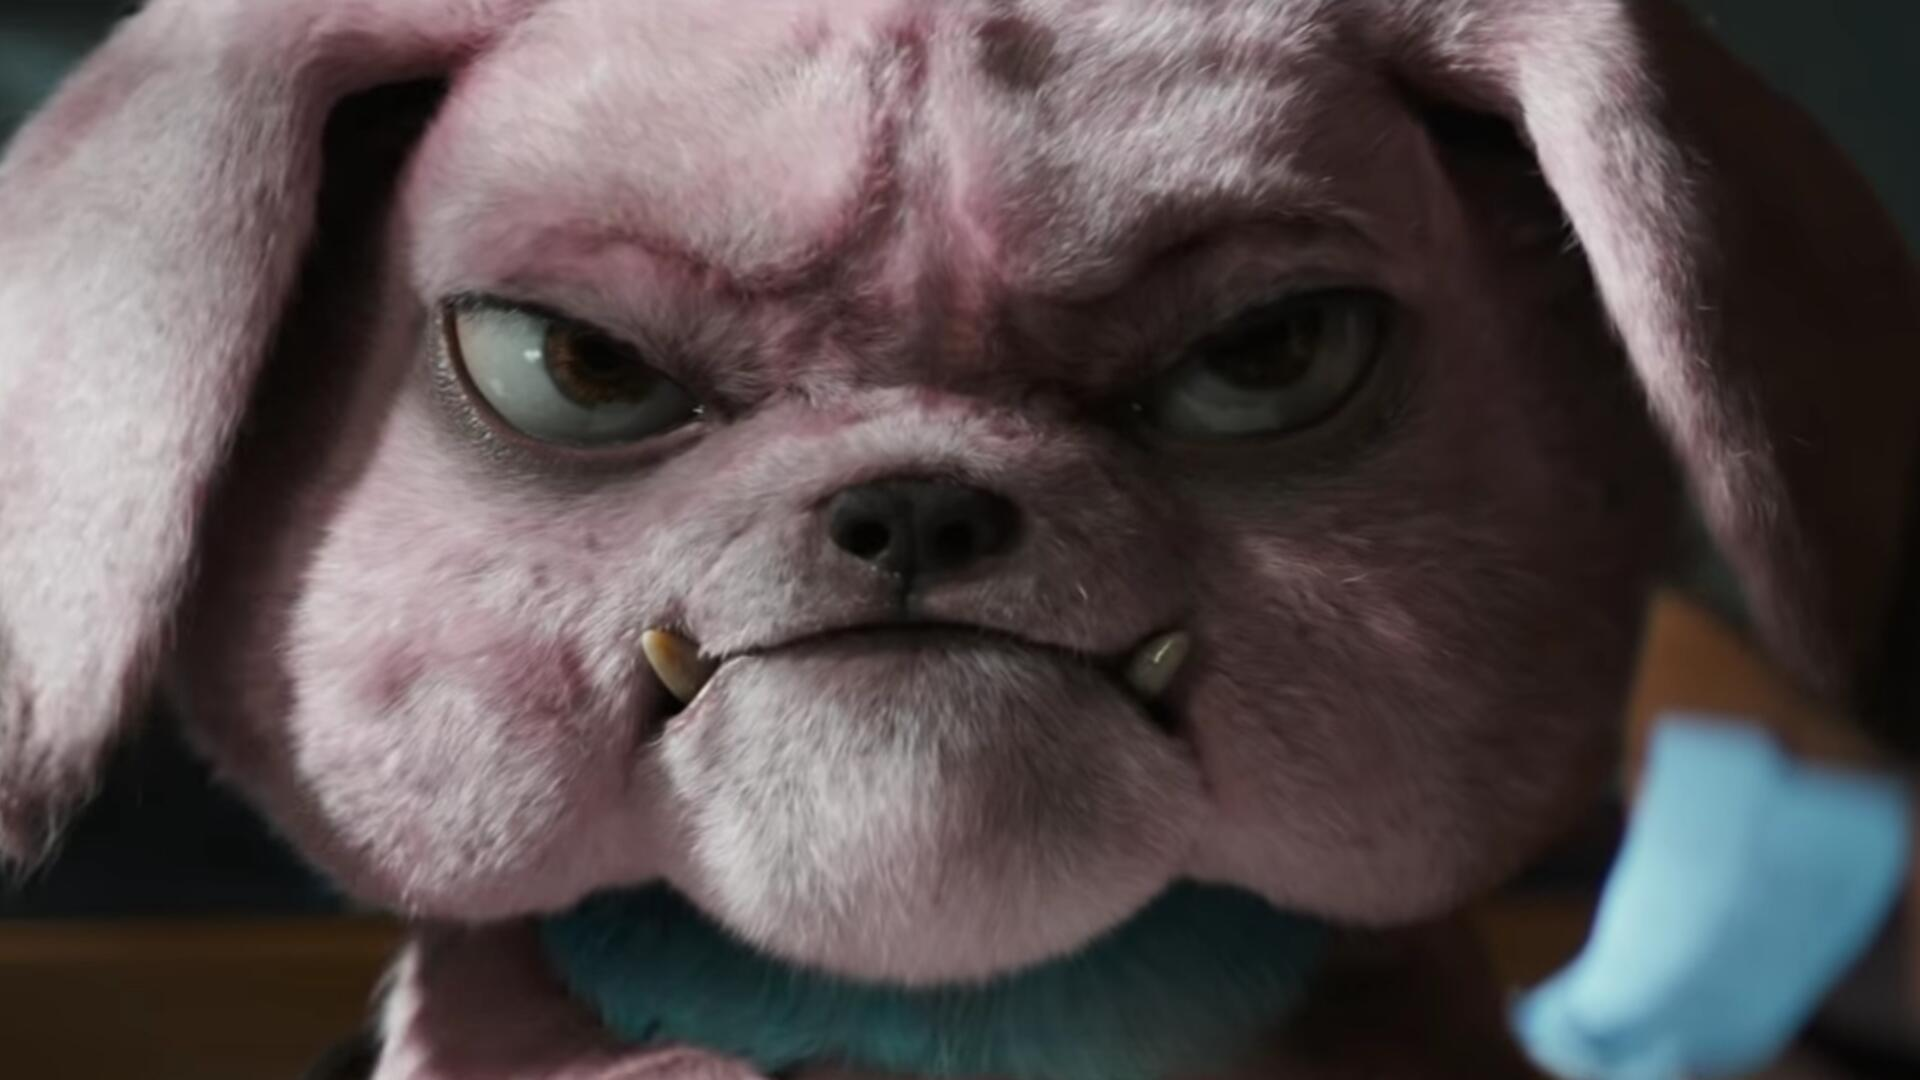 New Detective Pikachu Trailer Somehow Weirder and Crazier Than the First